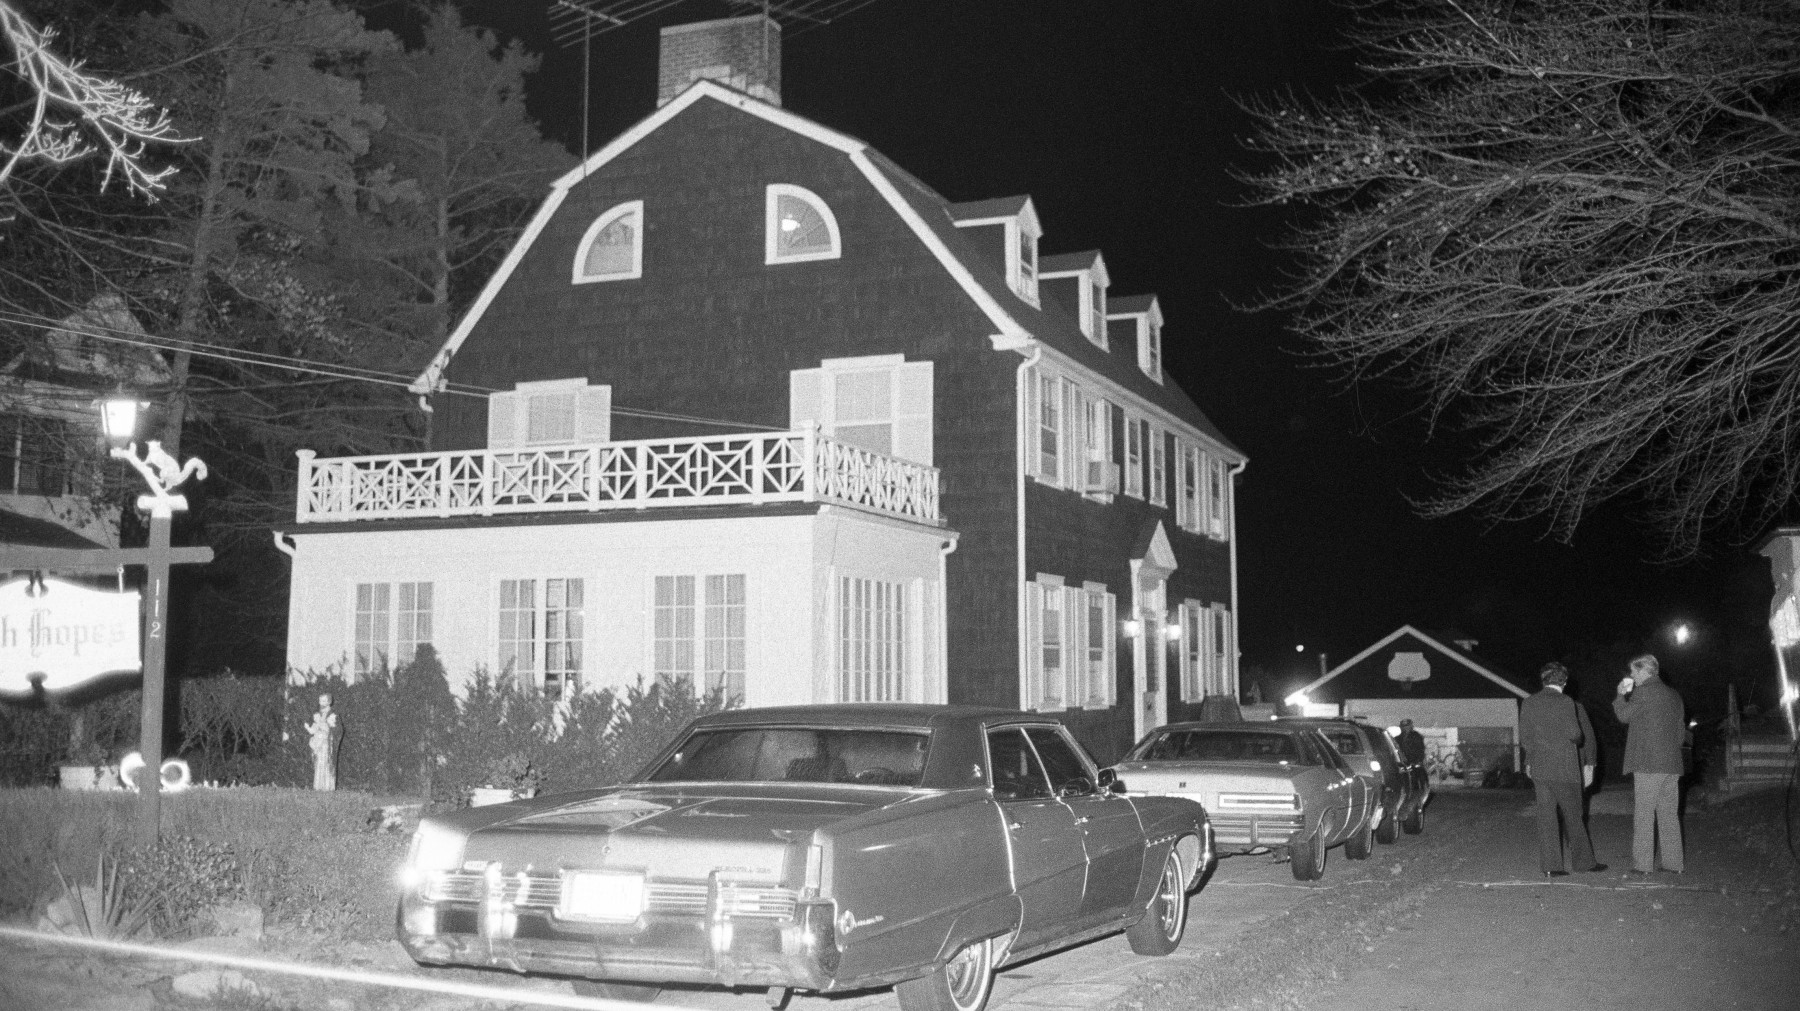 Amityville Horror House